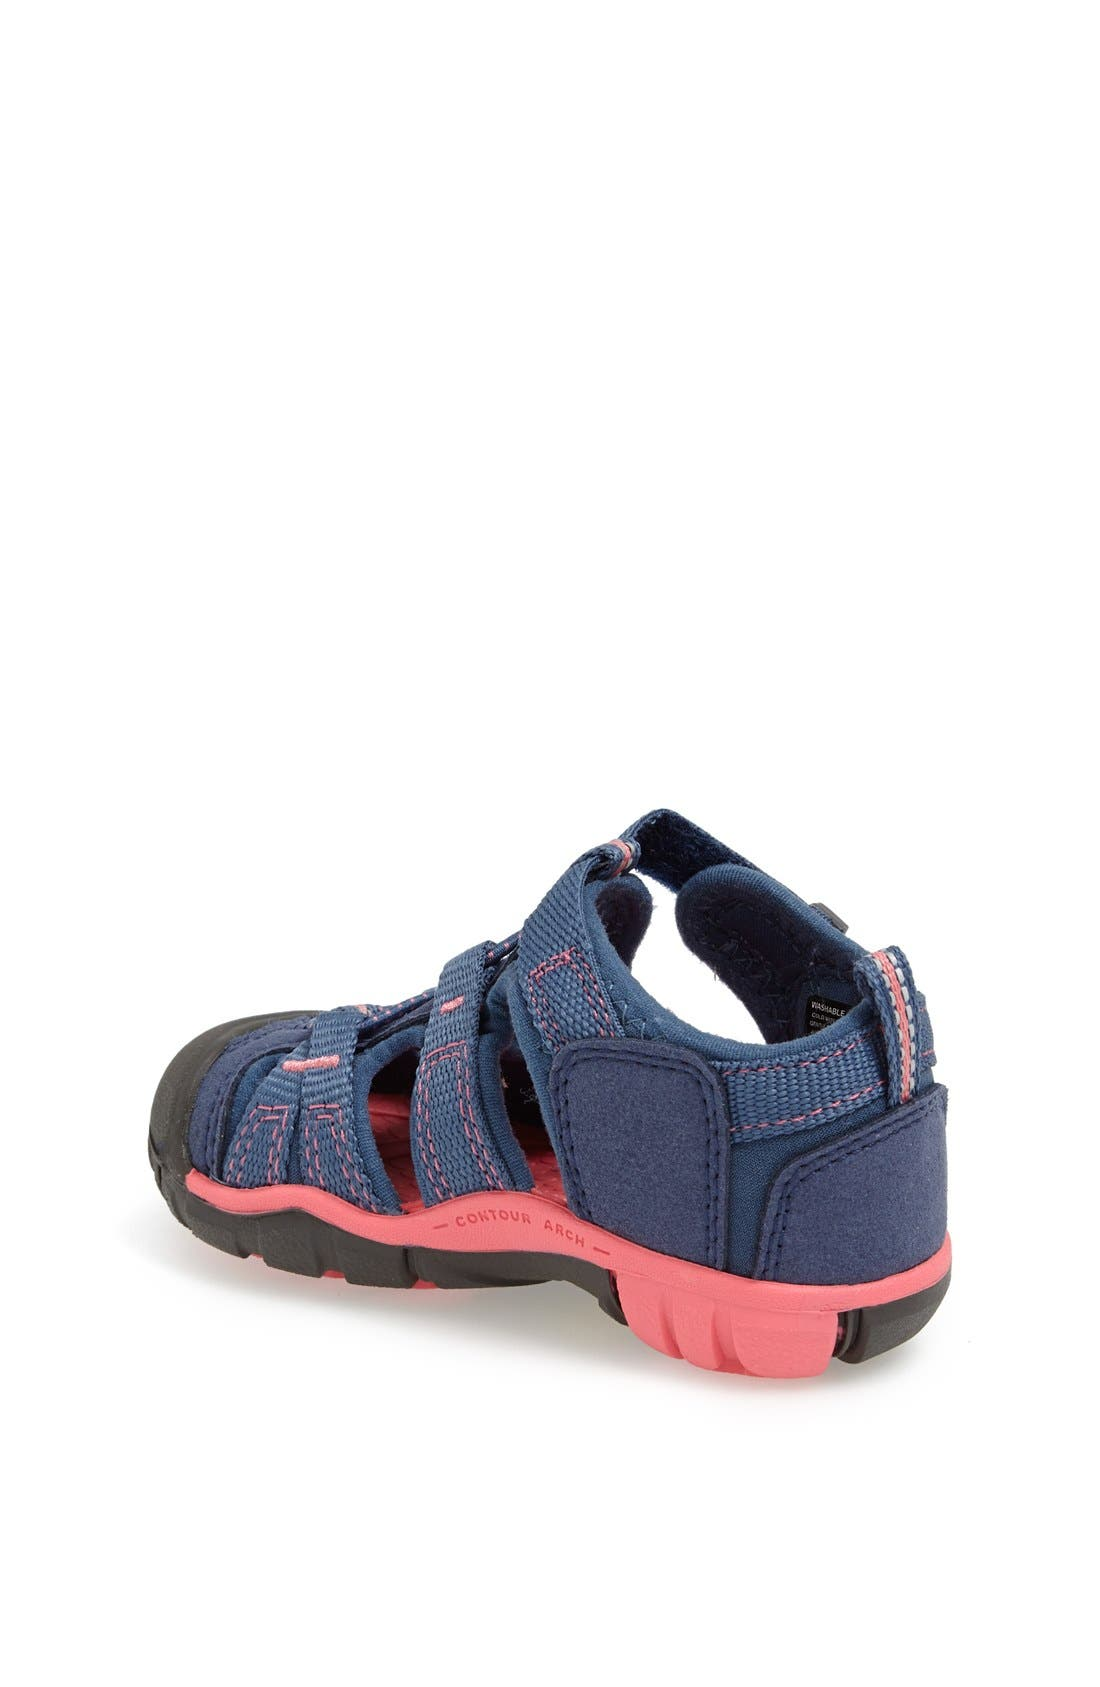 Alternate Image 2  - Keen 'Seacamp II' Waterproof Sandal (Baby & Walker)